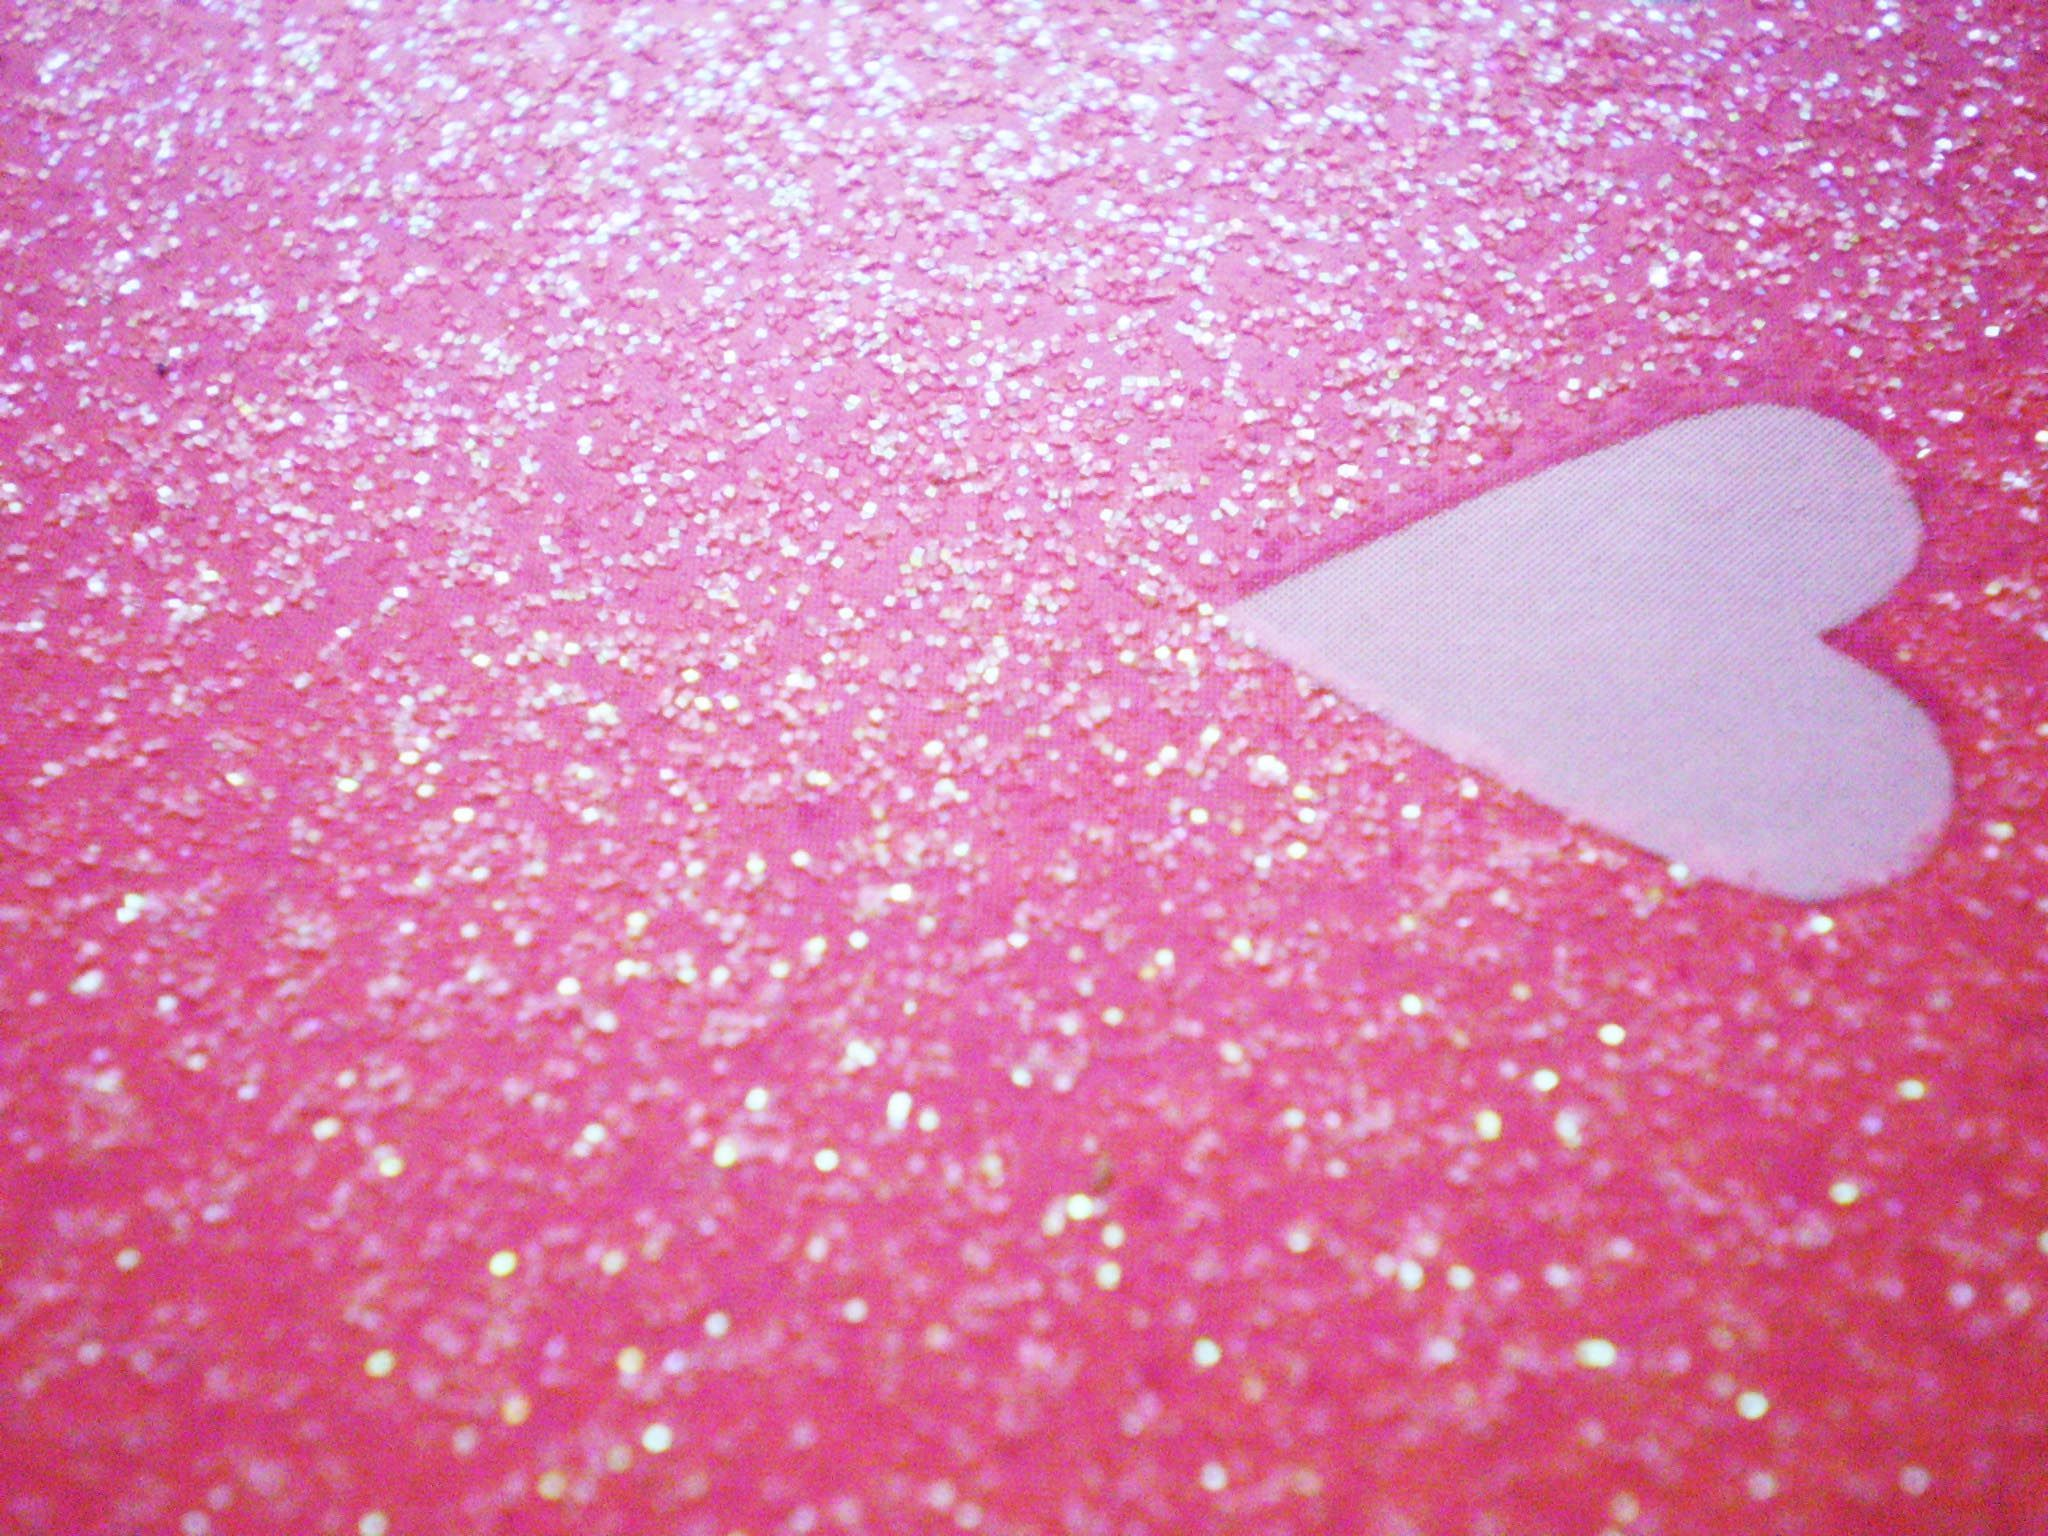 2048x1536 30+ Glitter Pink Hearts Wallpapers - Download at WallpaperBro